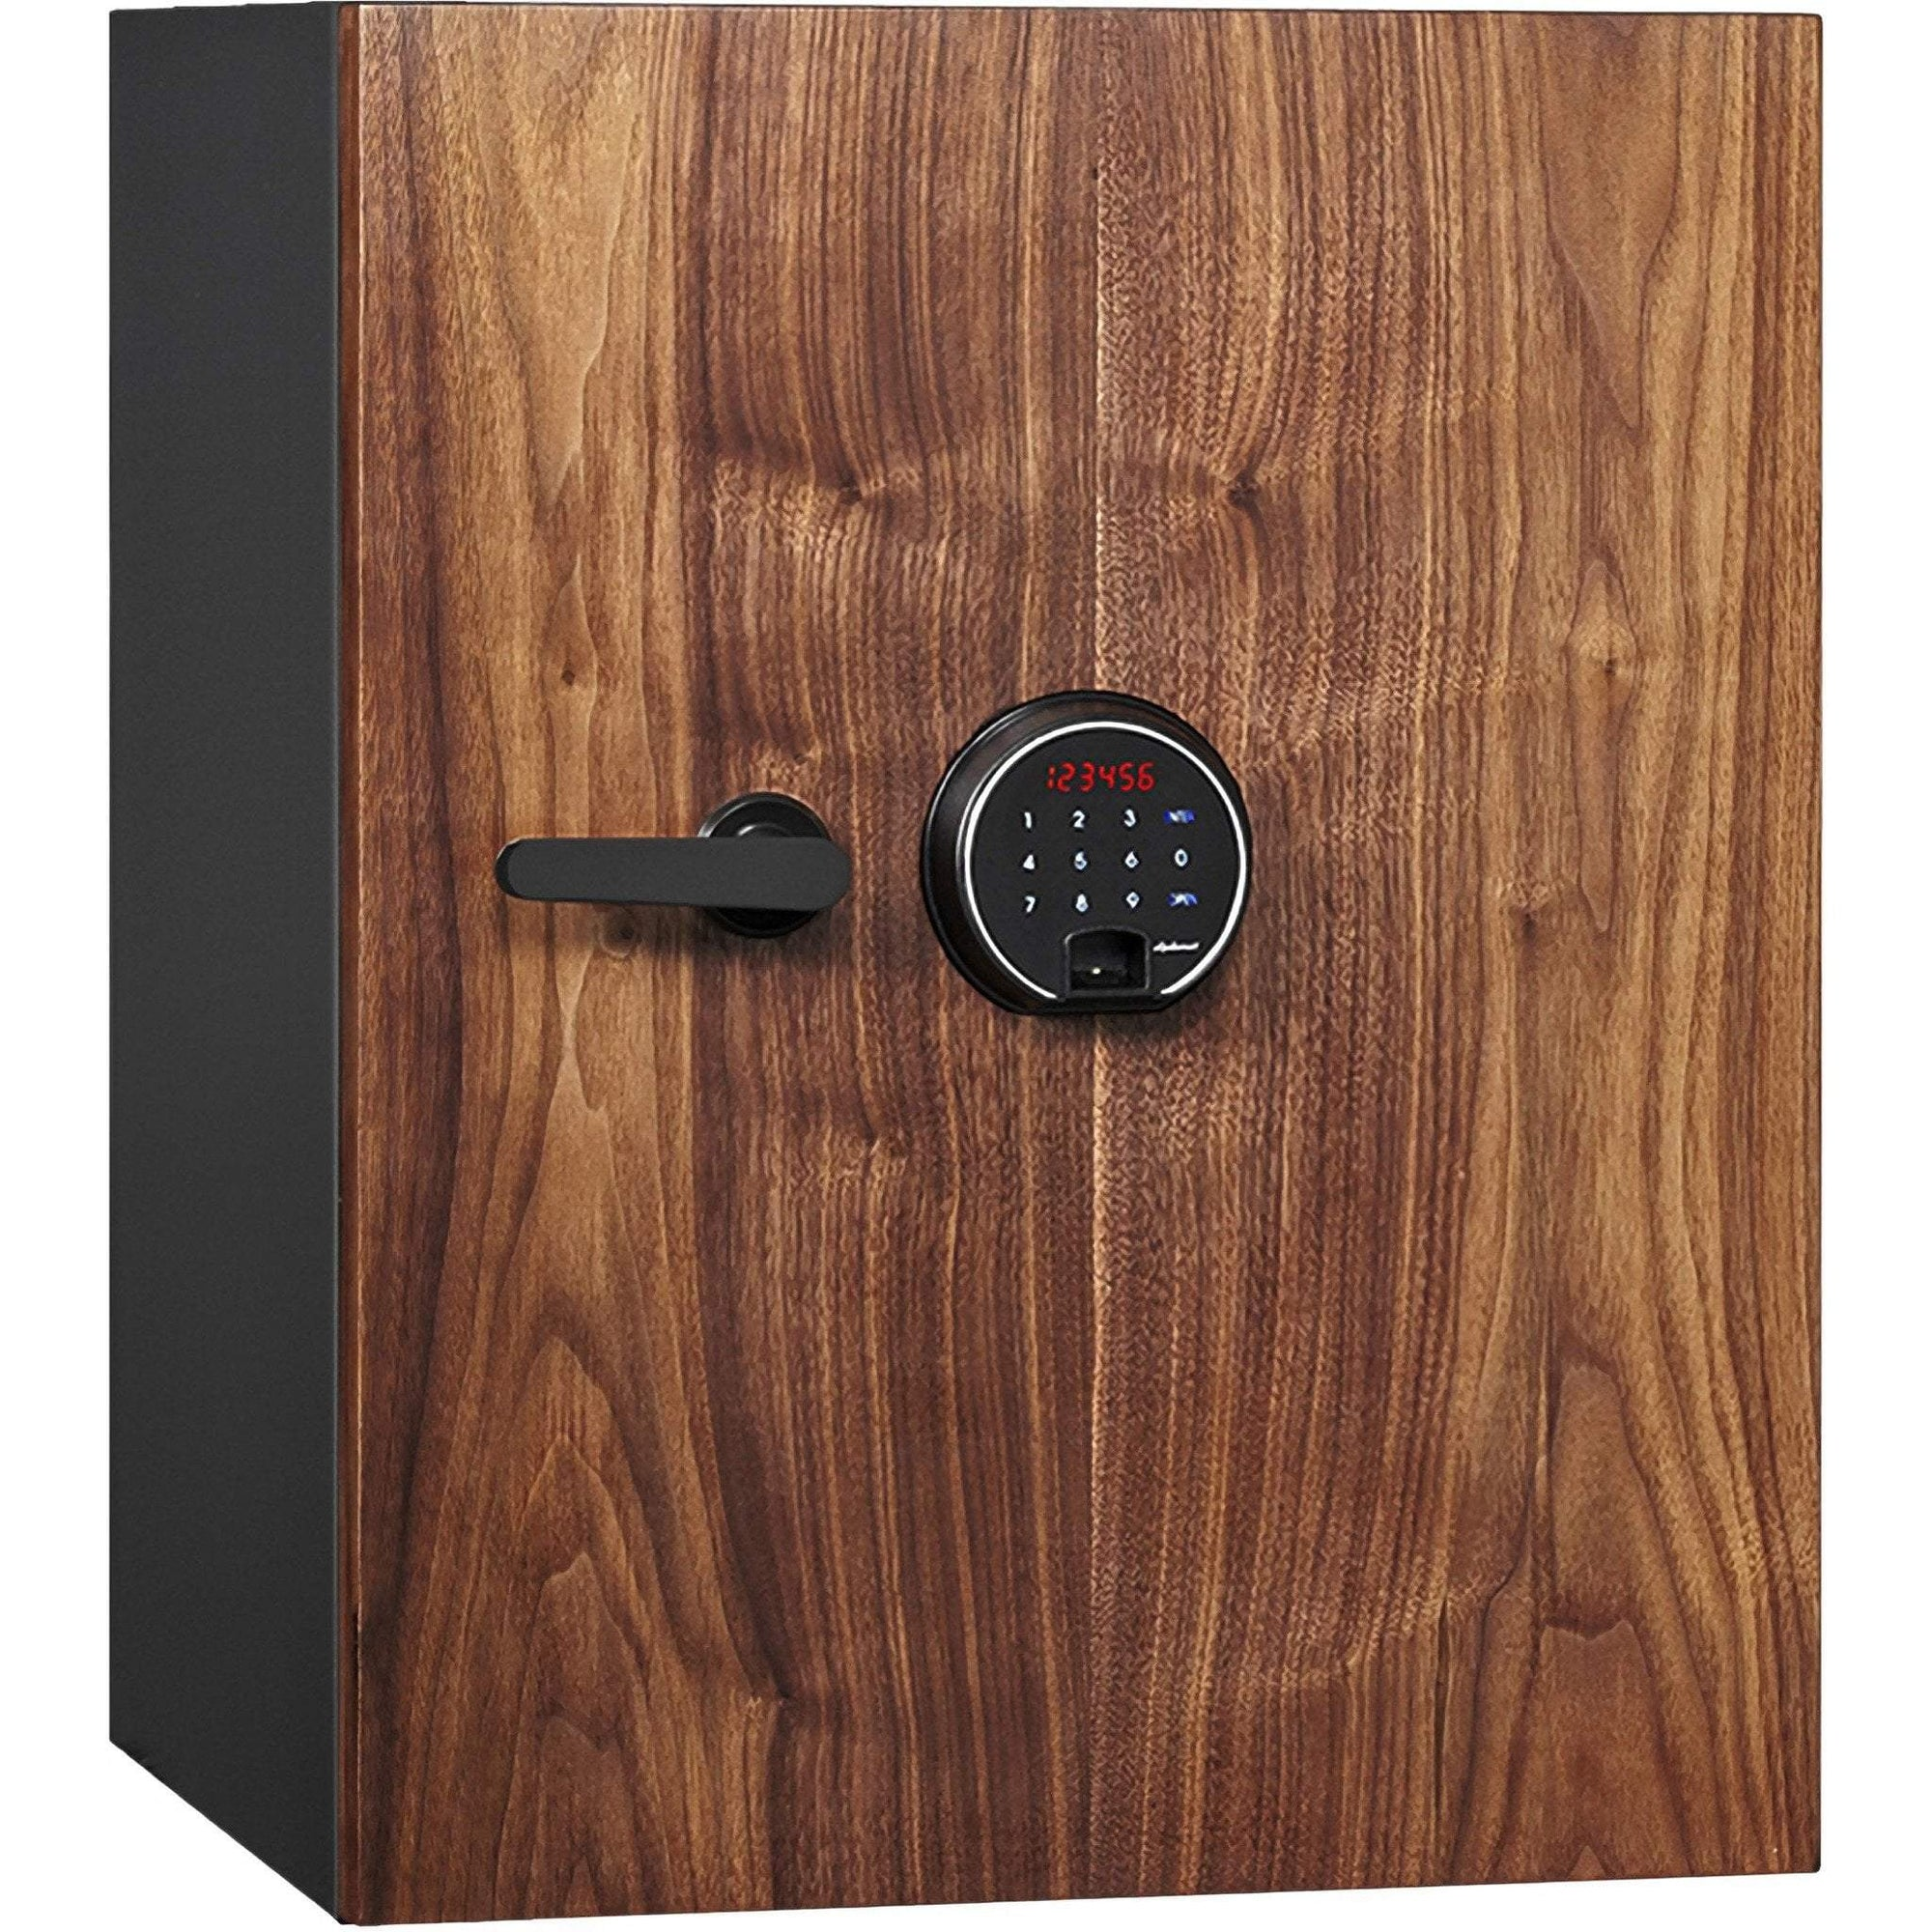 Phoenix DBAUM700 Fingerprint Lock Luxury Fireproof Safe with Walnut Door Armadillo Safe and Vault